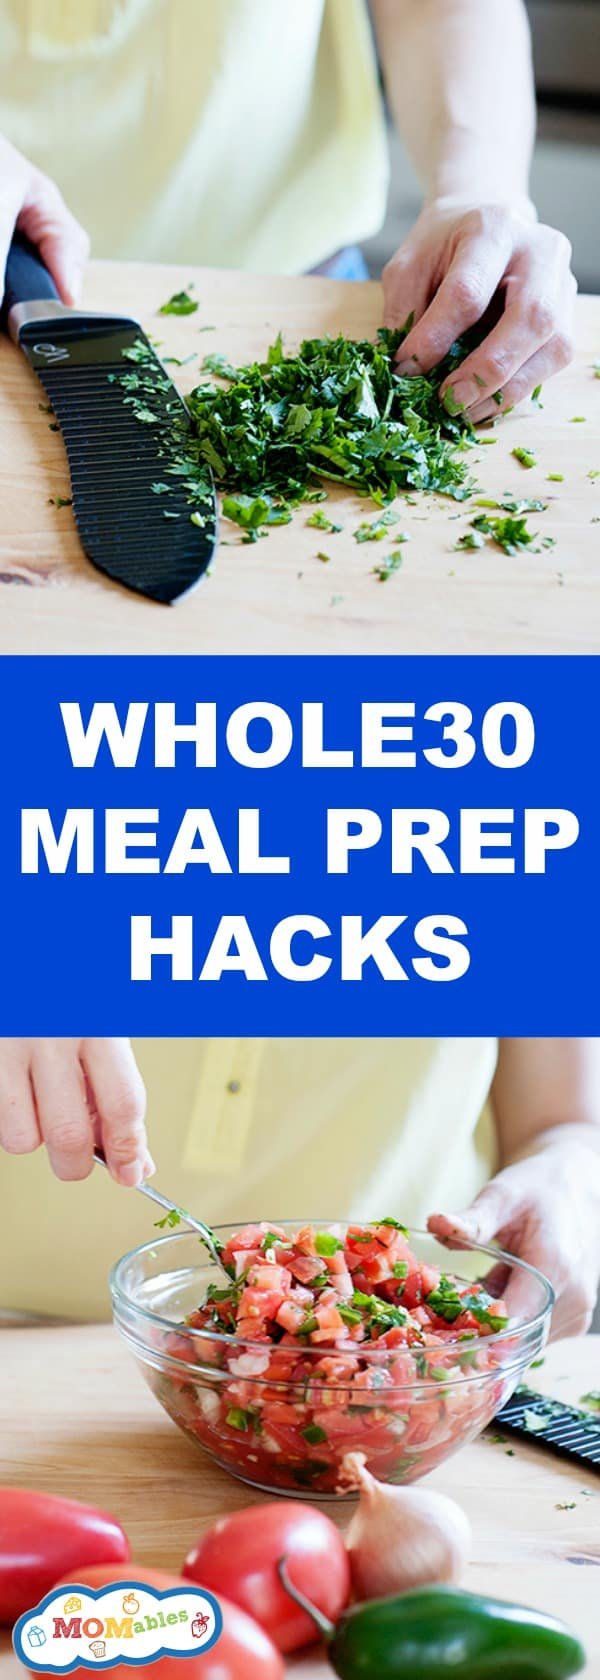 Whole 30 Meal Prep Hacks to help you spend less time in the kitchen and make mealtimes easier